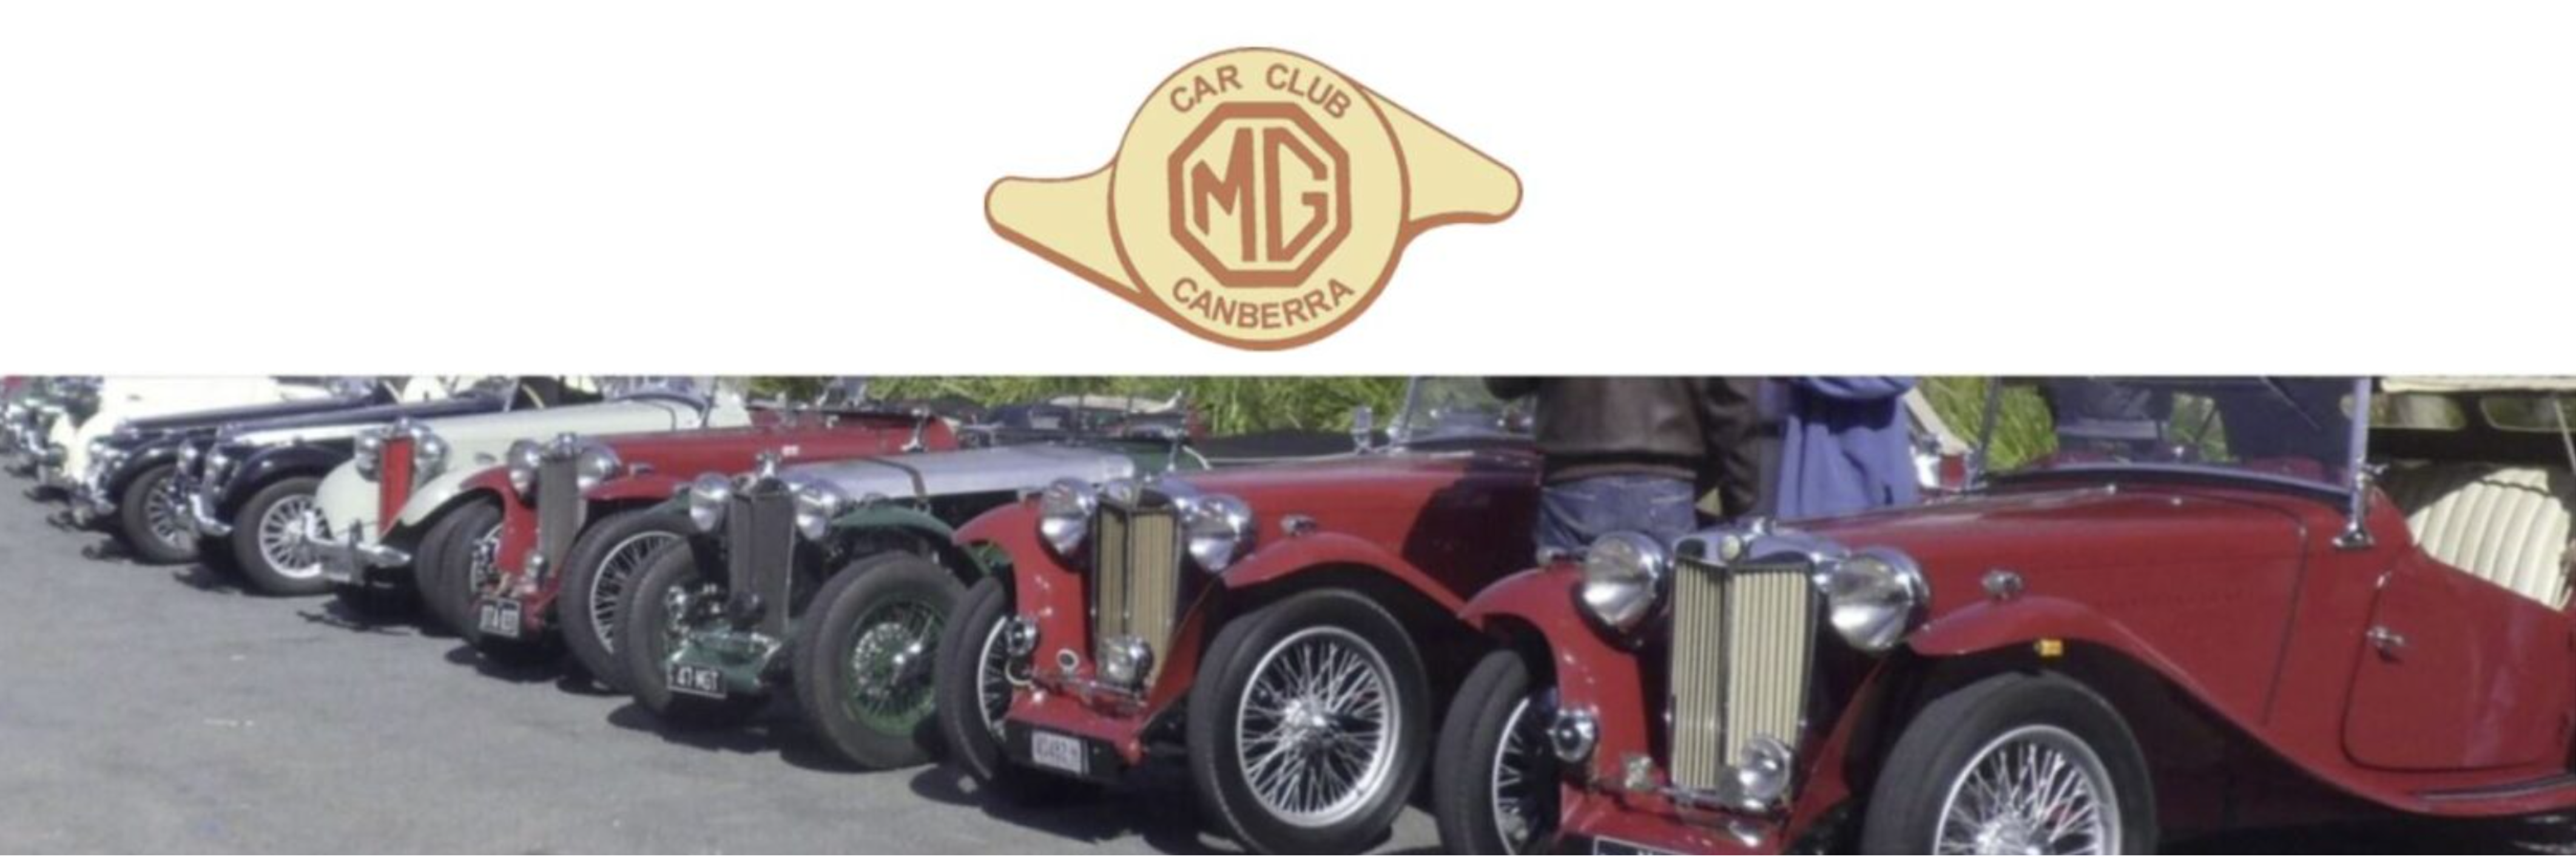 Welcome to the MG Car Club Canberra